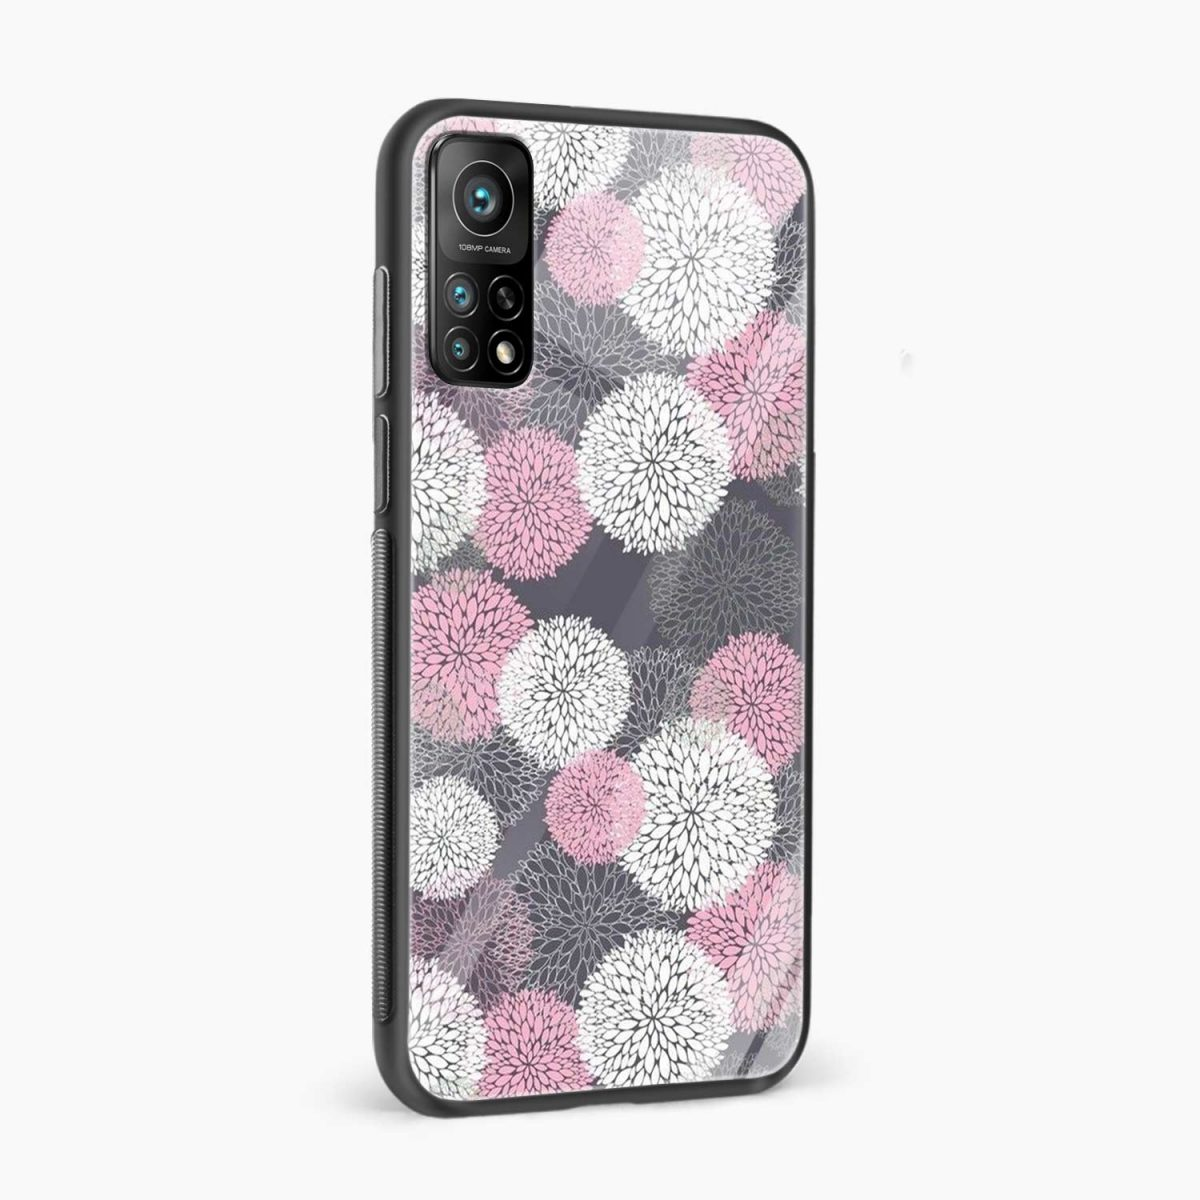 pink white flower pattern xiaomi mi 10t pro back cover side view